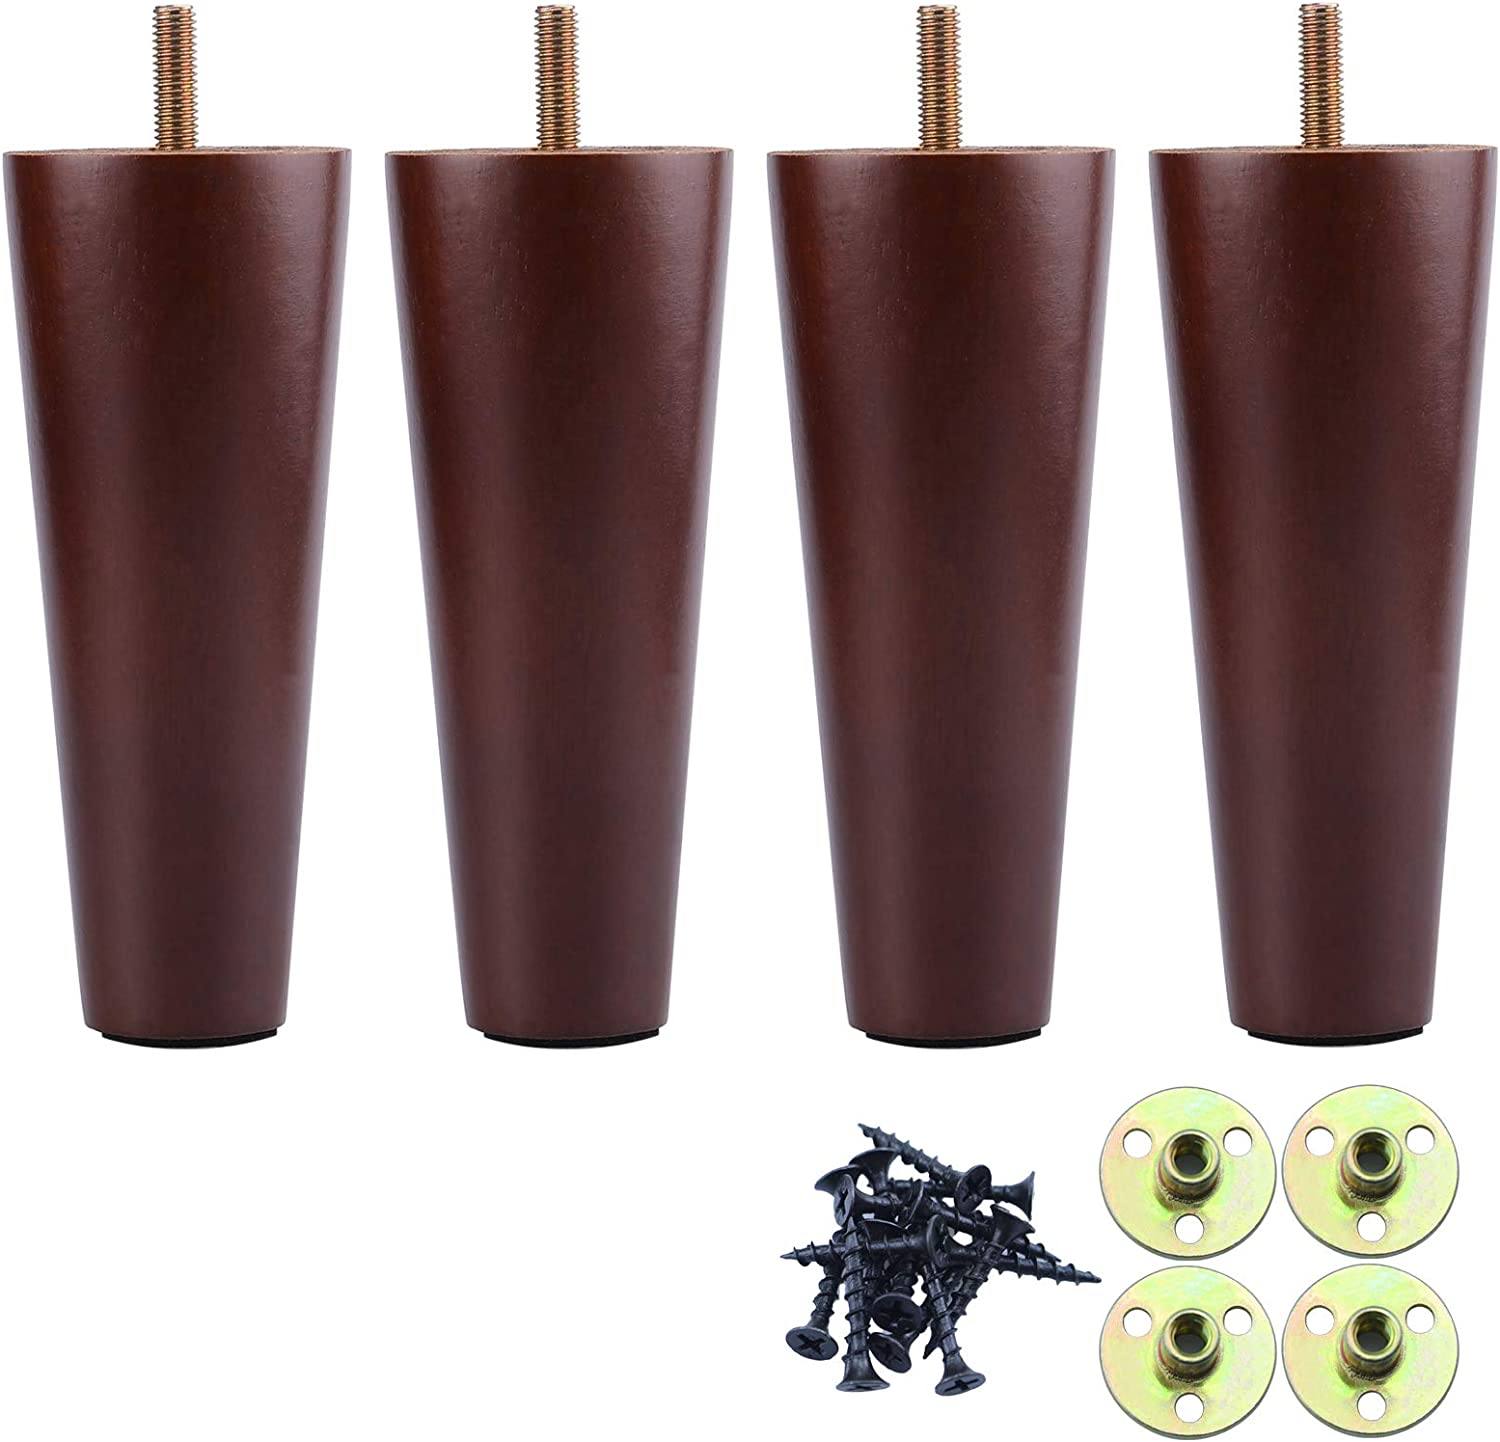 Couch Legs 6 Inch, Wood Furniture Feet Sofa Legs Set of 4, Solid Wood Dark Walnut Sofa Feet, Replacement Legs for Armchair, Cabinet, Chair, Mid Century Modern Dresser, Bun Feet